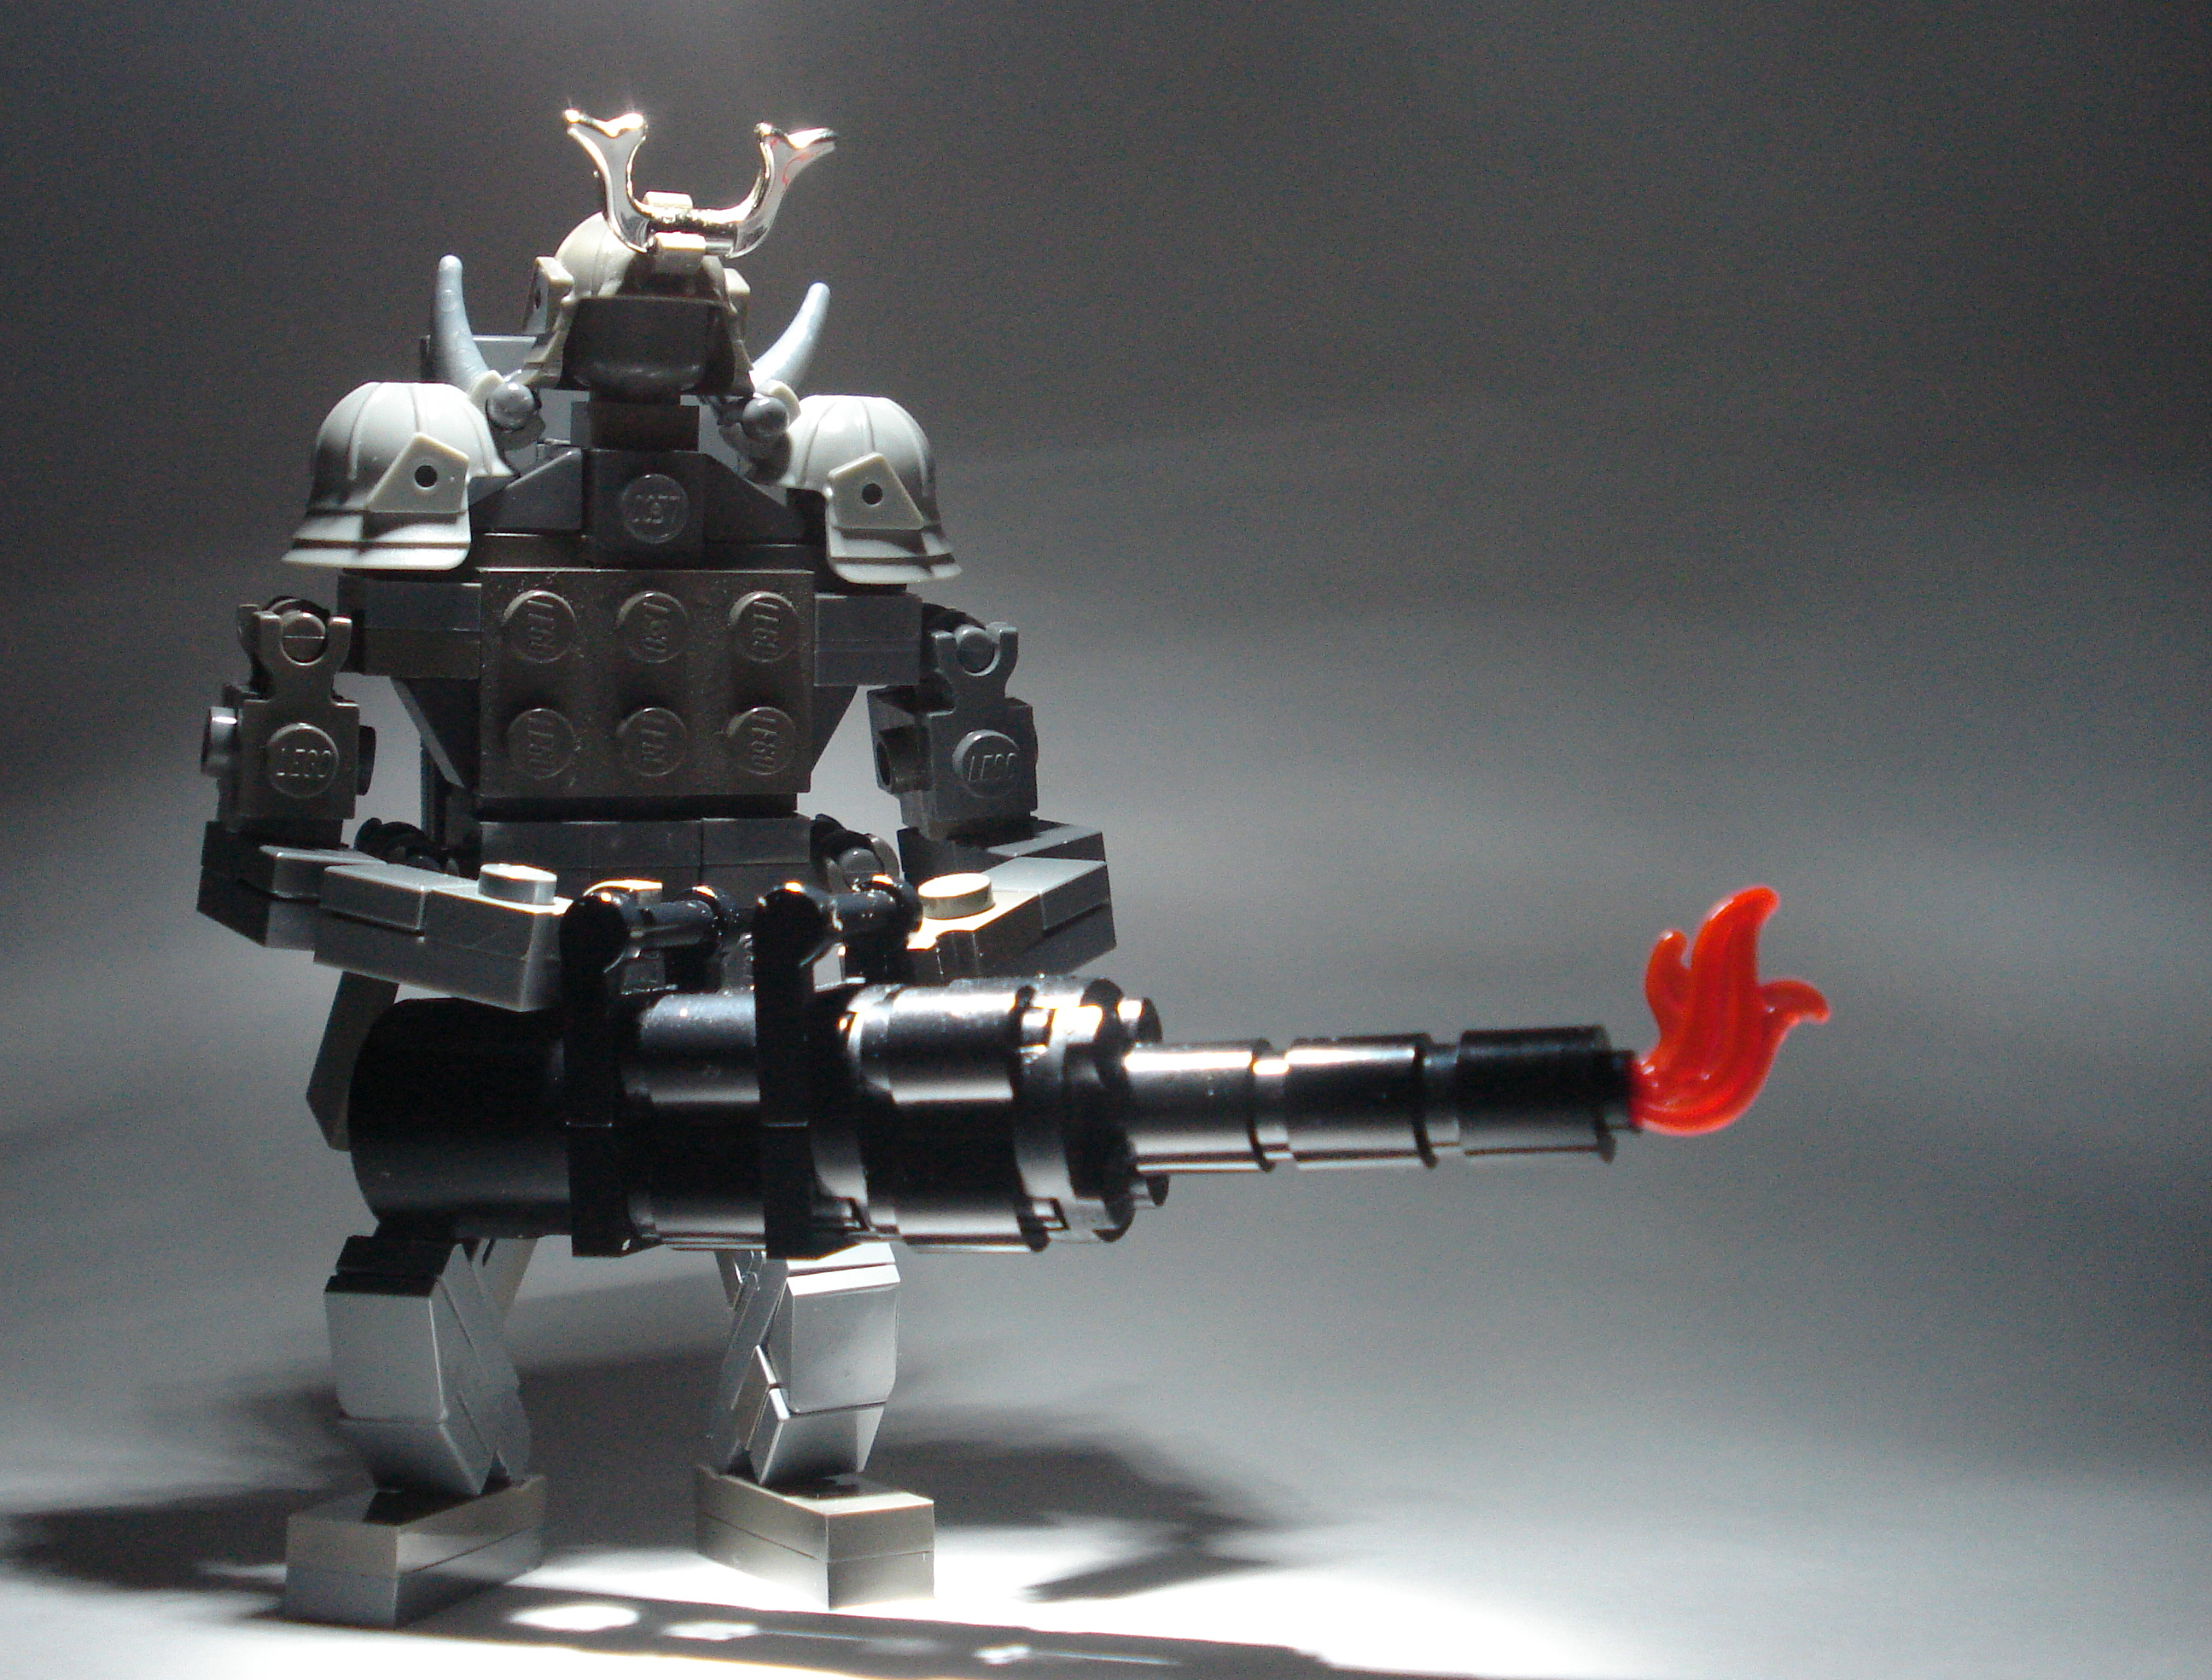 Robo-Samurai with a Minigun